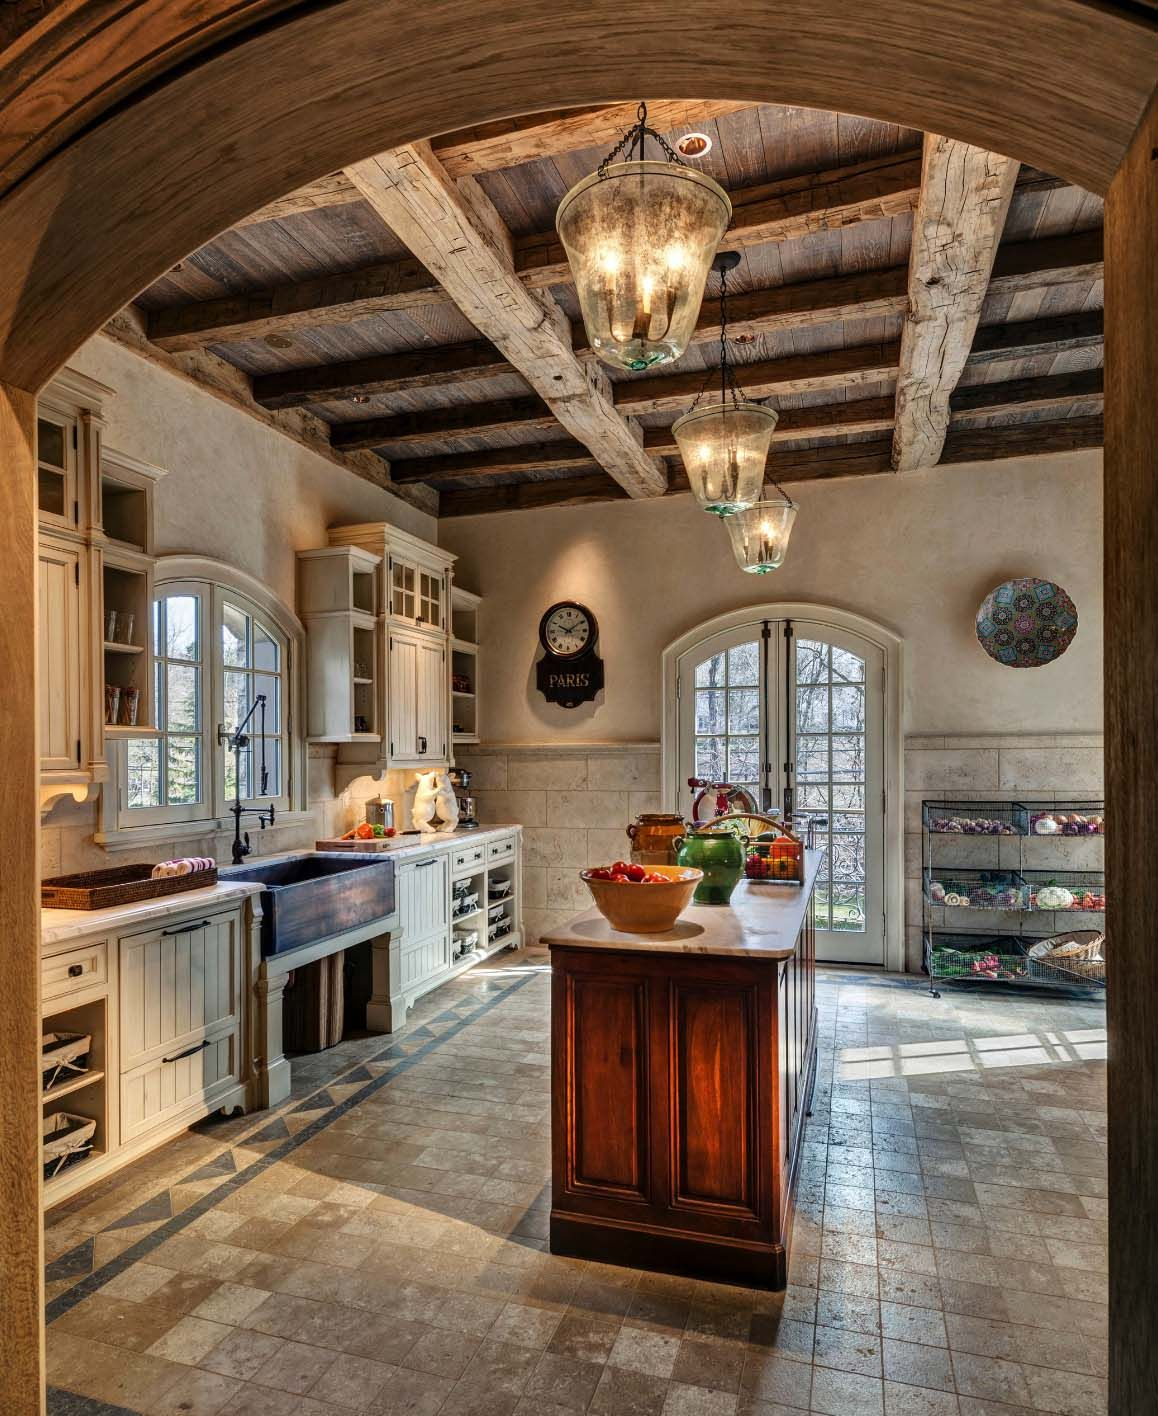 French Farmhouse Kitchen Design: Beautiful French Normandy-inspired Farmhouse In Rural